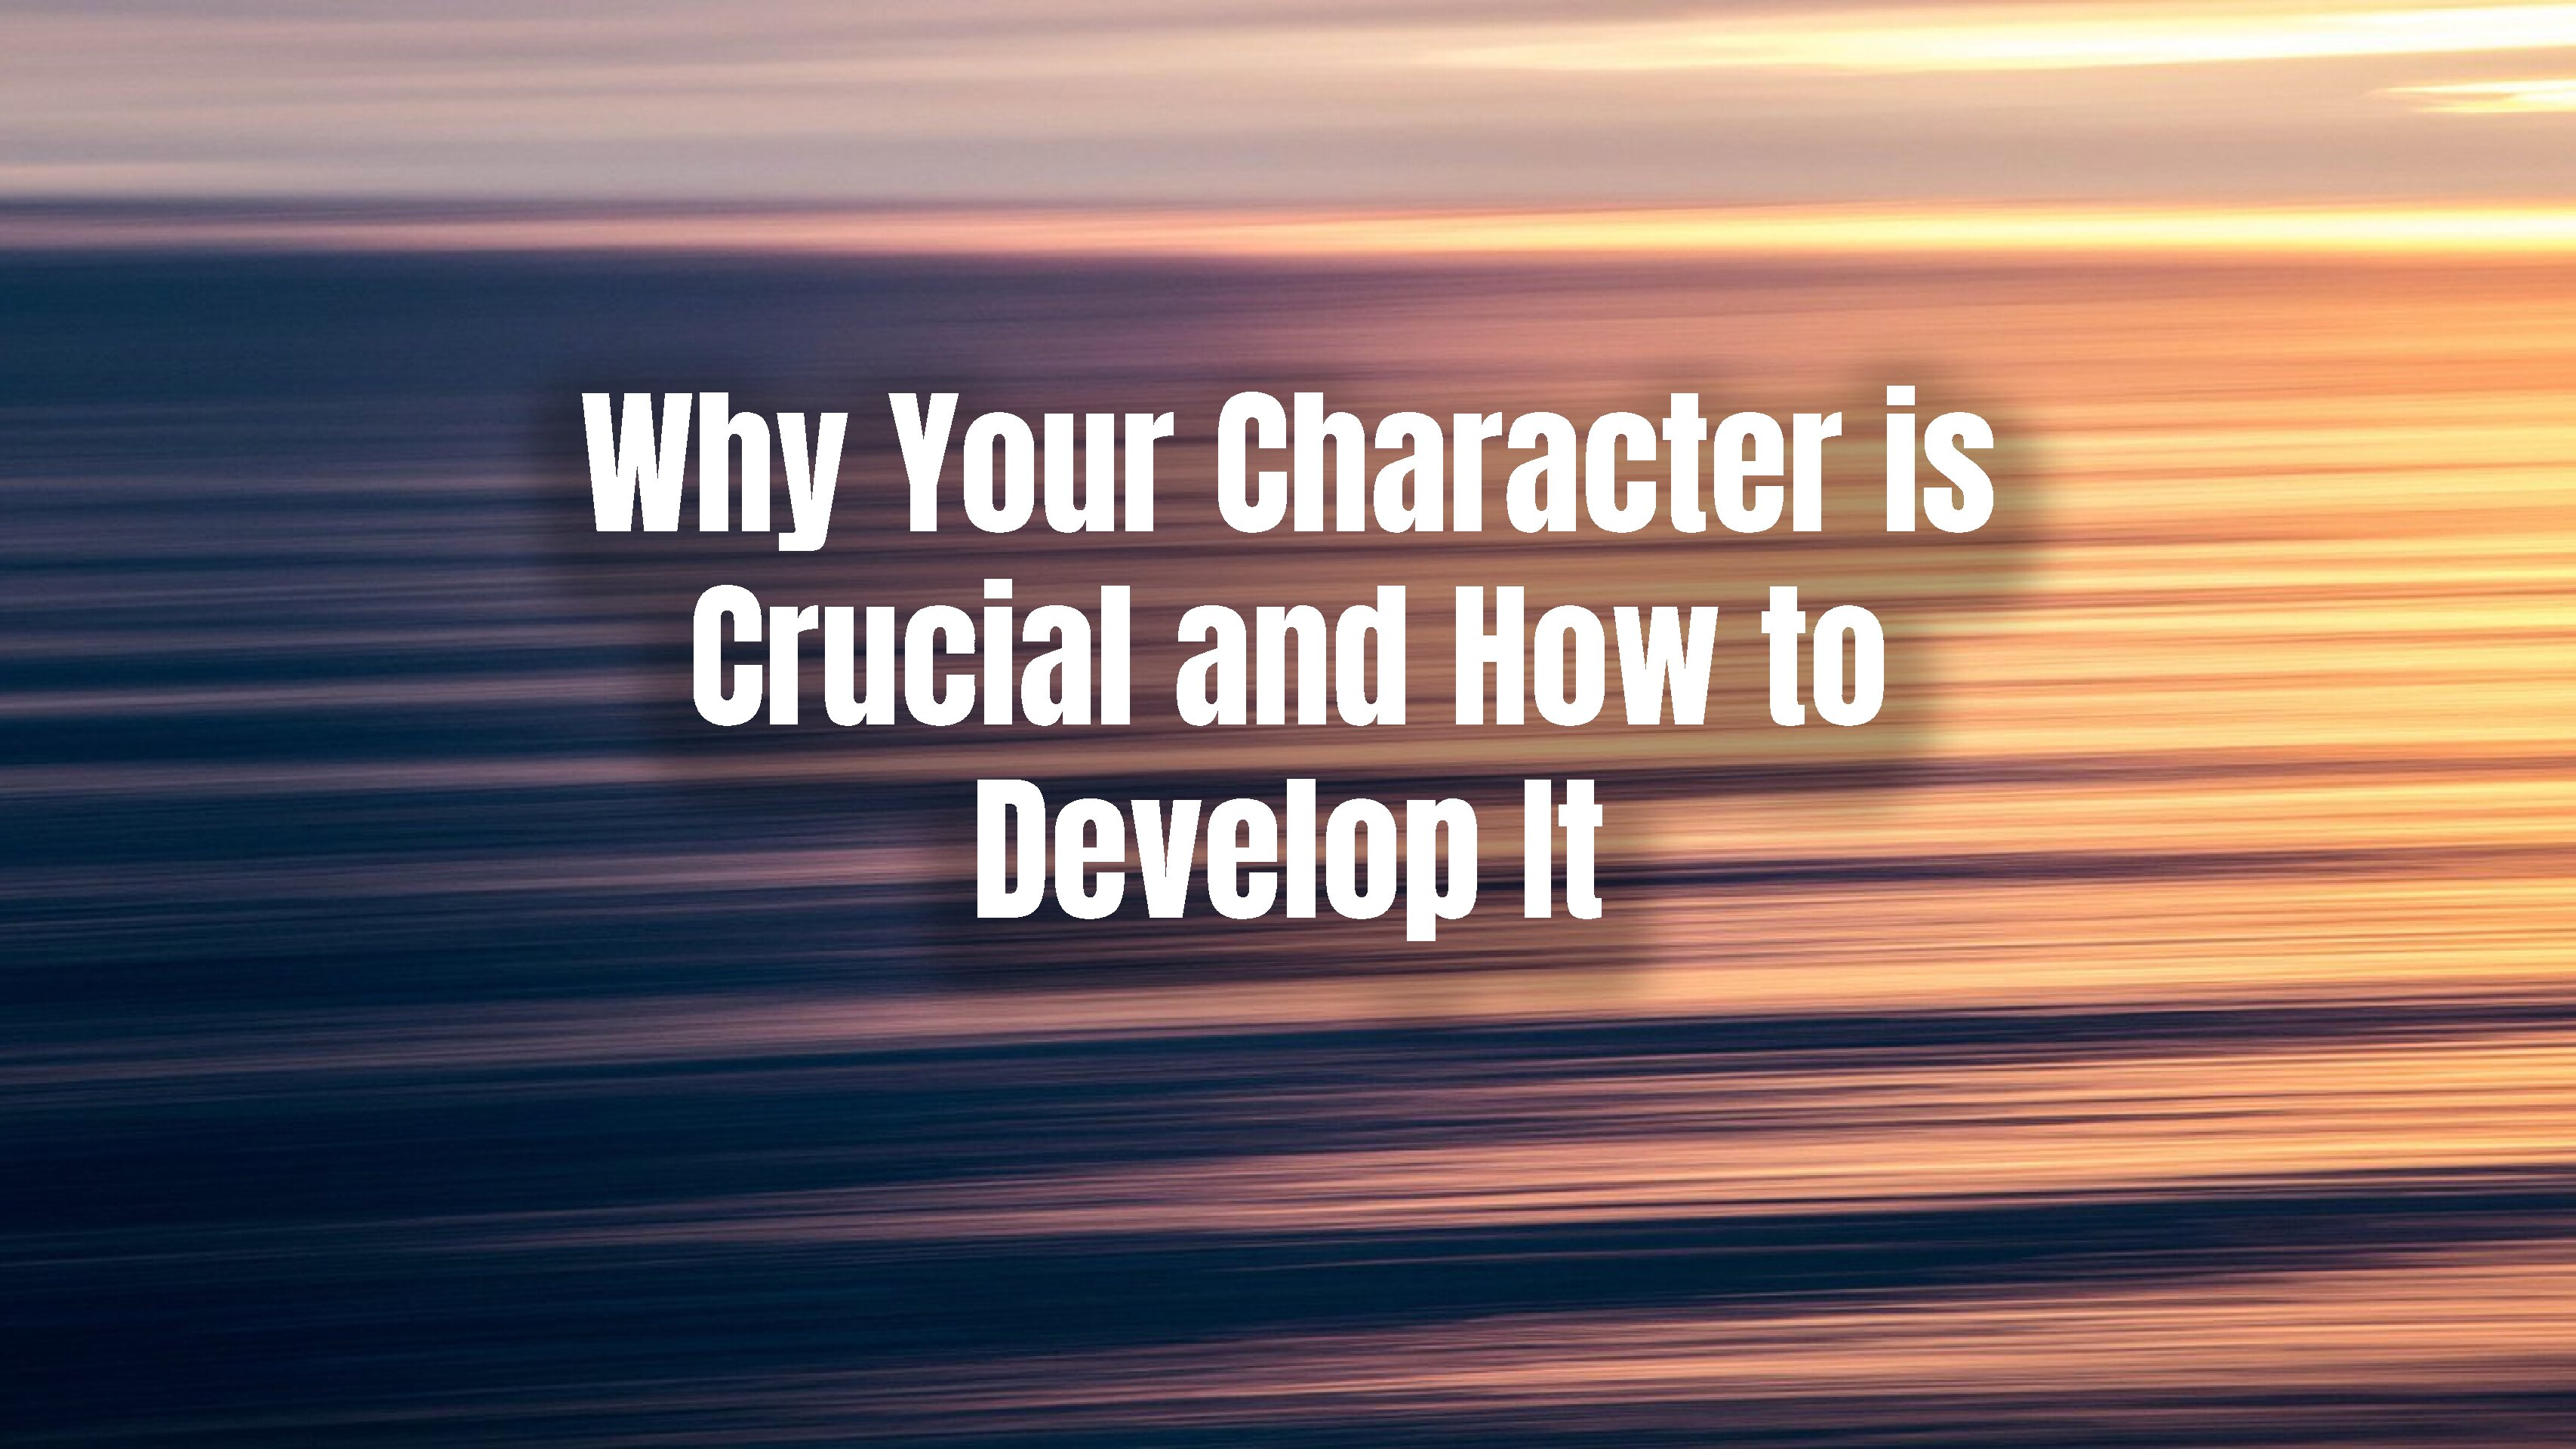 Why Your Character is Crucial and How to Develop It